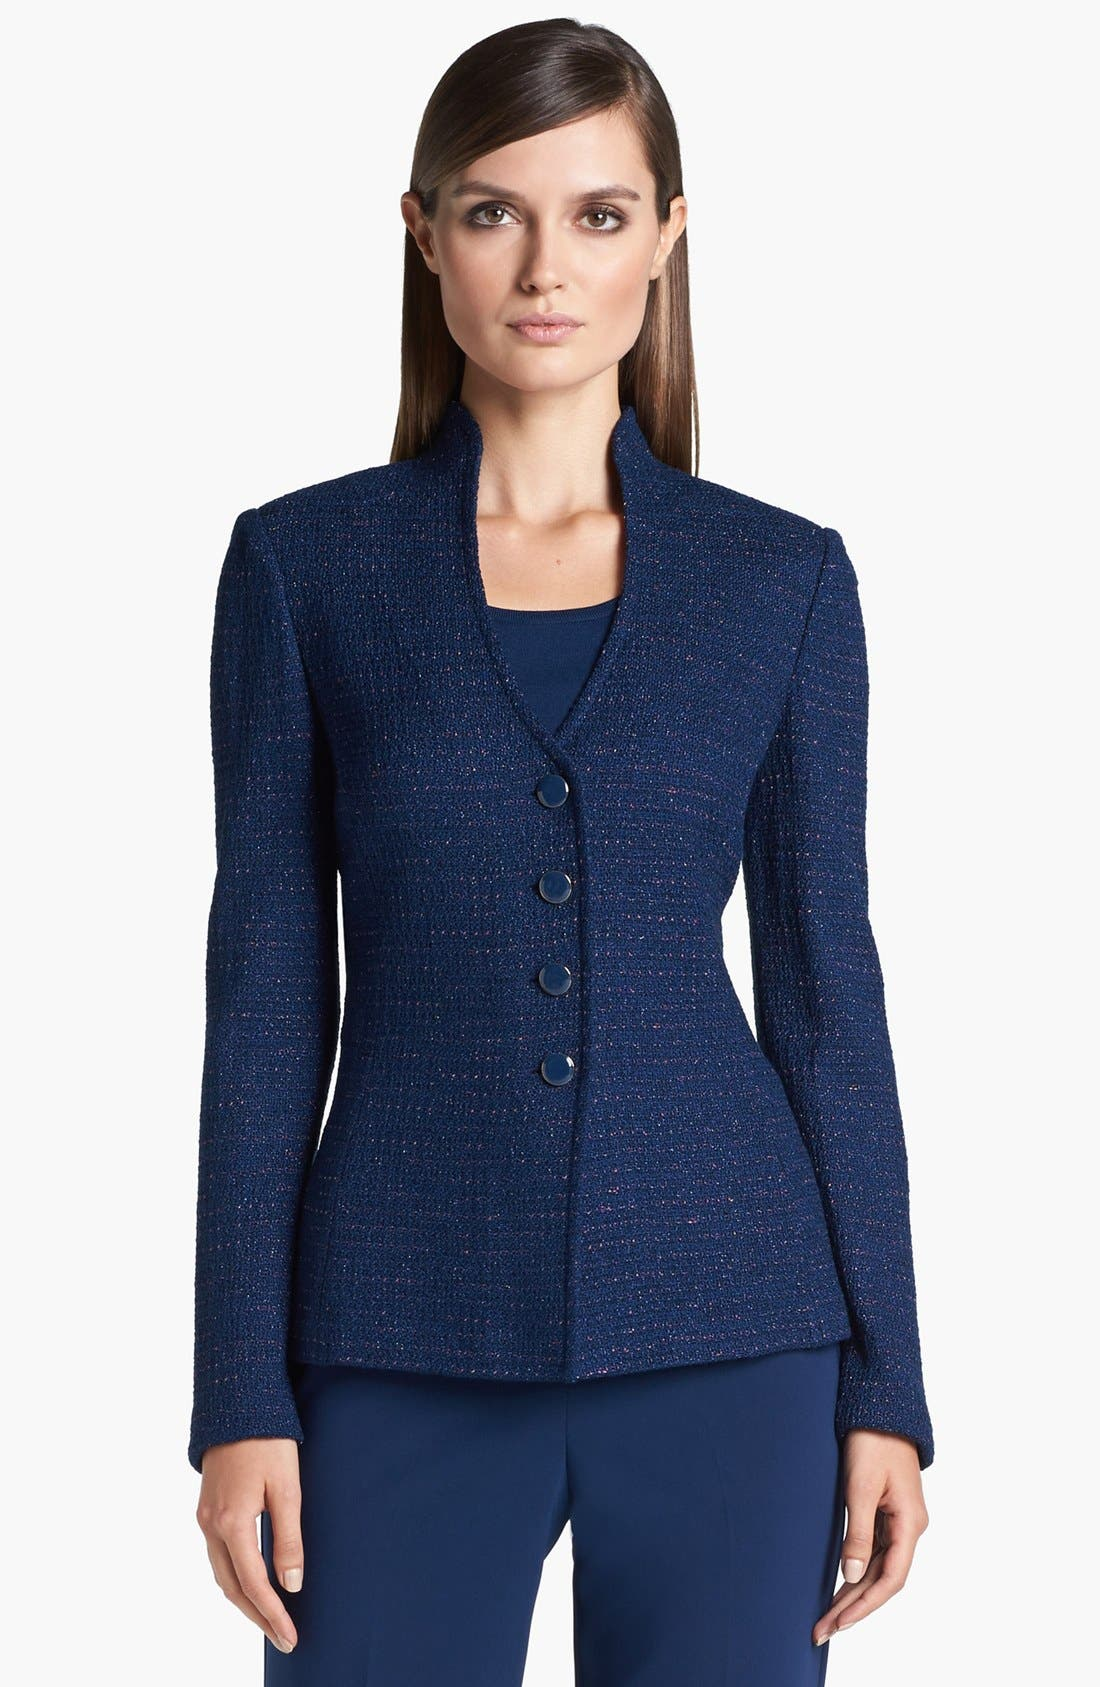 Main Image - St. John Collection Novelty Dot Tweed Fitted Jacket